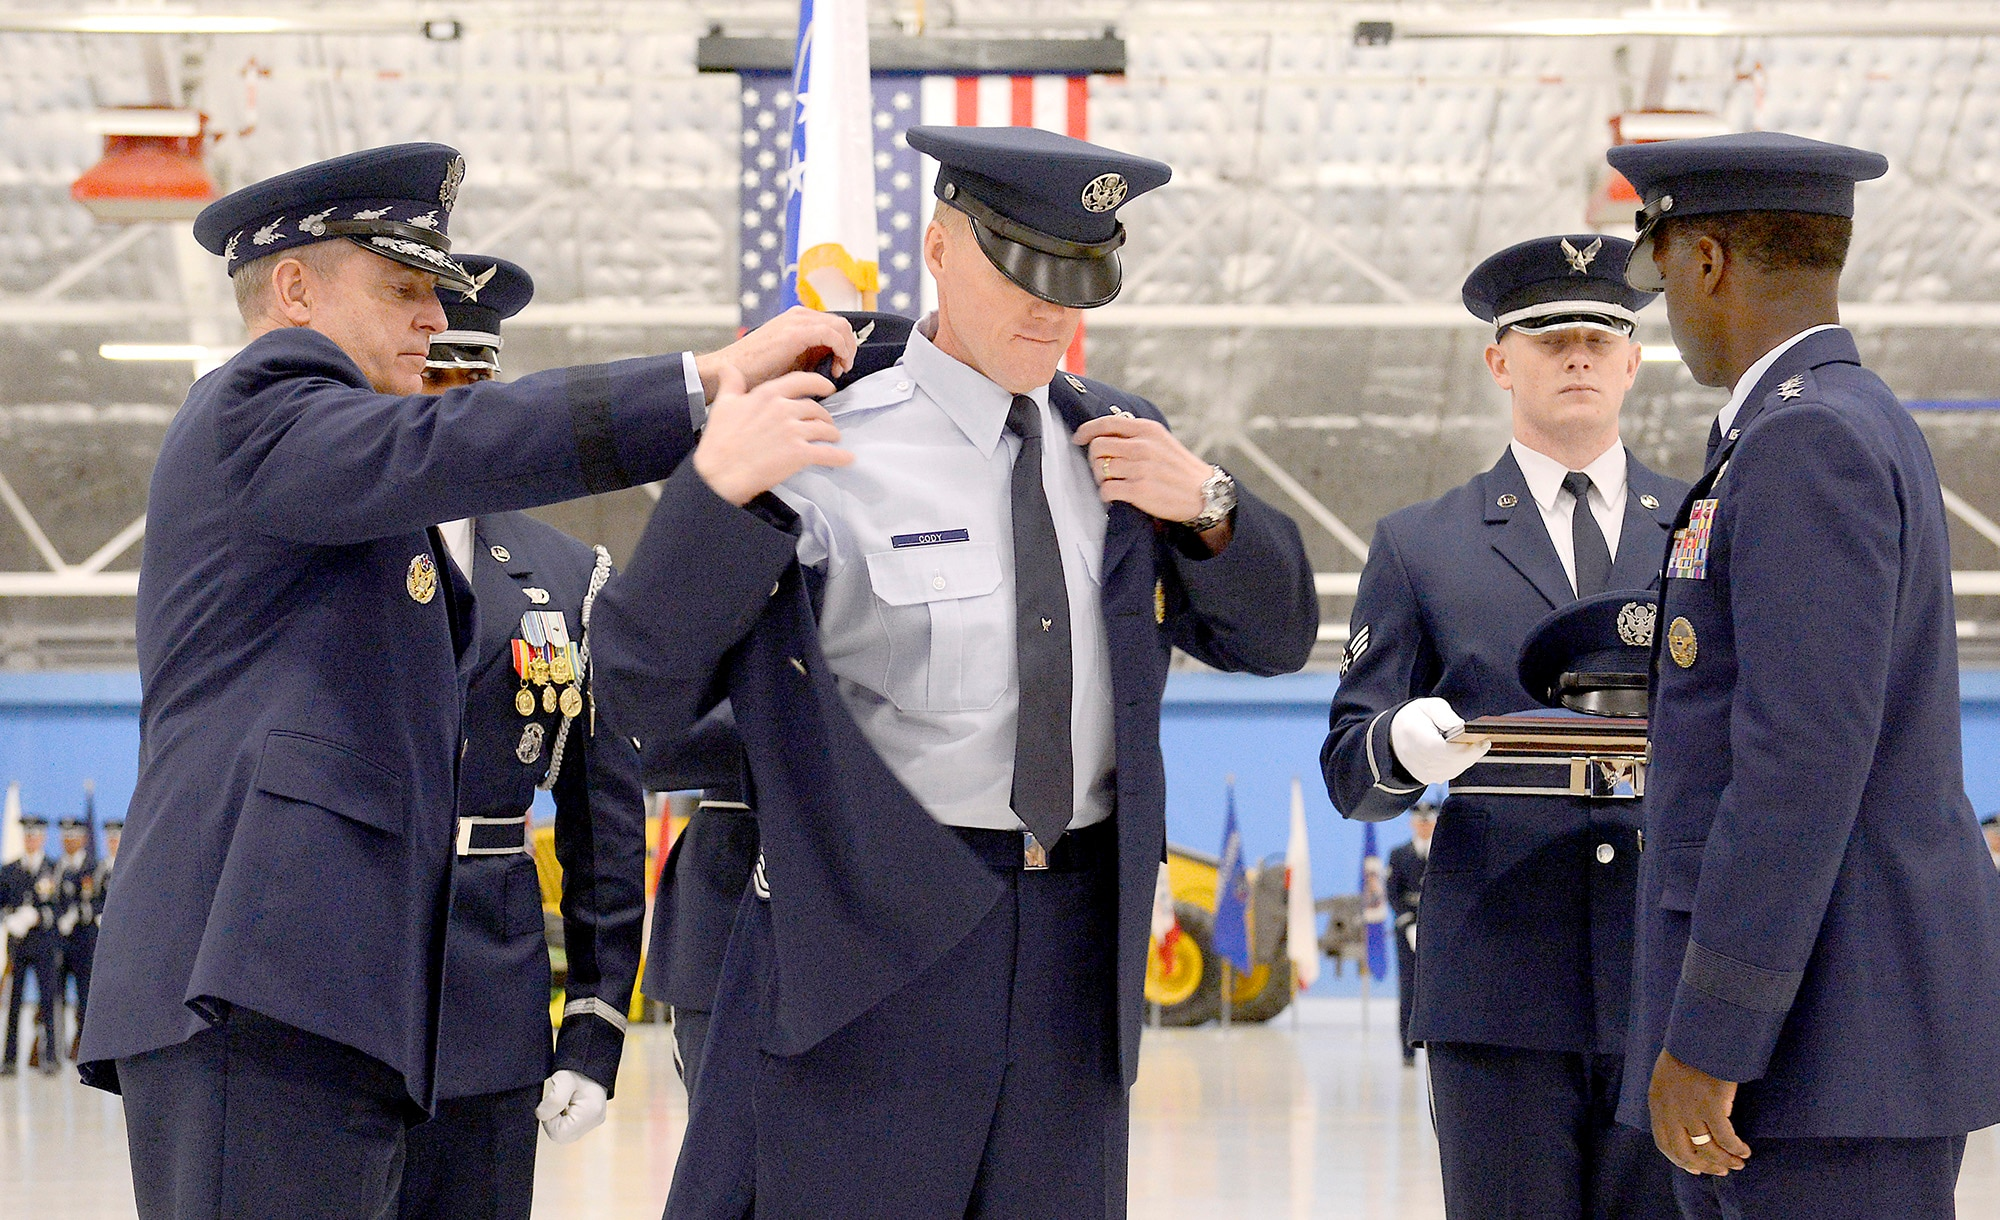 Becoming the 17th person to hold the office, Chief Master Sgt. James Cody receives his service dress coat with his new insignia from Air Force Chief of Staff Gen. Mark A. Welsh III and Gen. Edward A. Rice Jr., commander of Air Education and Training Command, at Joint Base Andrews, Md., on Jan 24, 2013. (U.S. Air Force photo/Scott M. Ash)